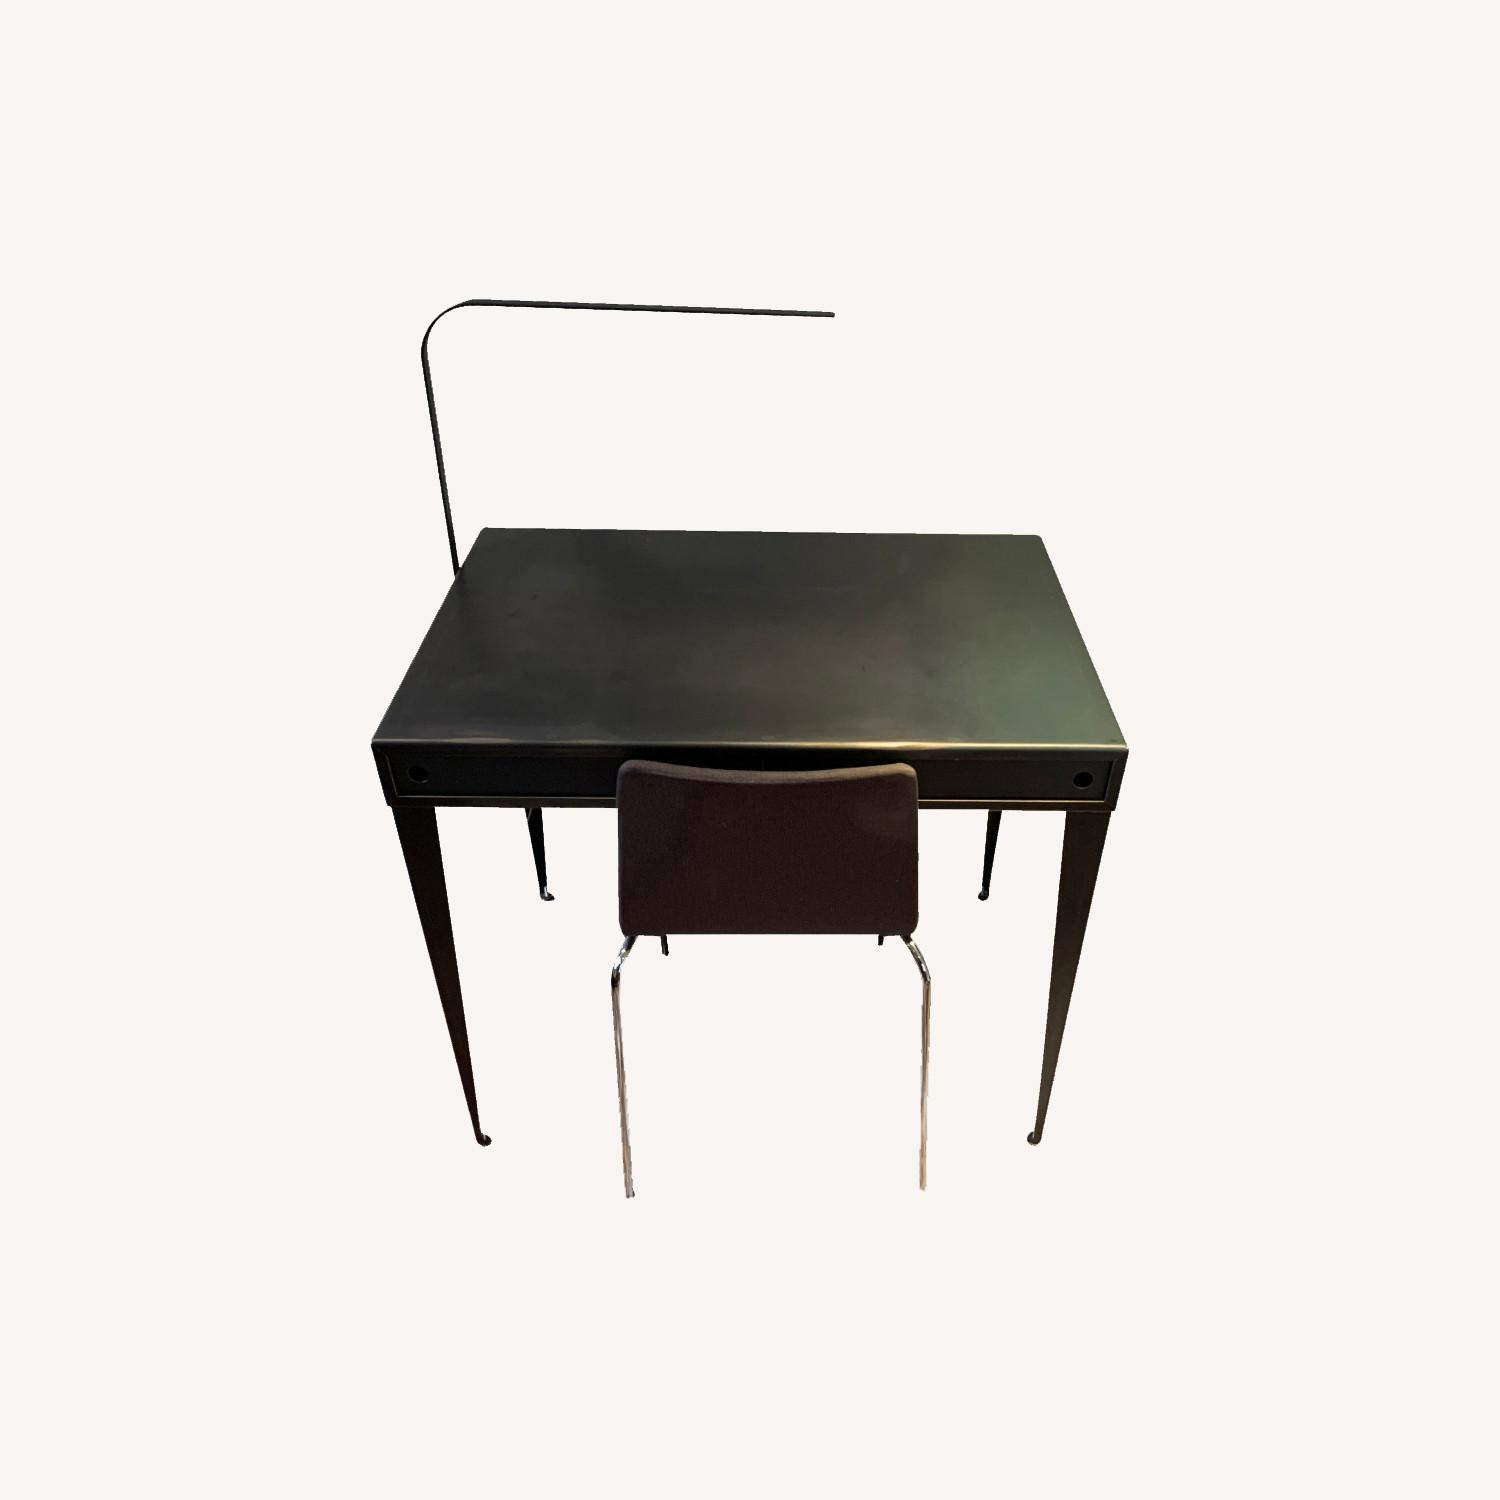 Steel Desk, LED lamp and Blu Dot Chair - image-0